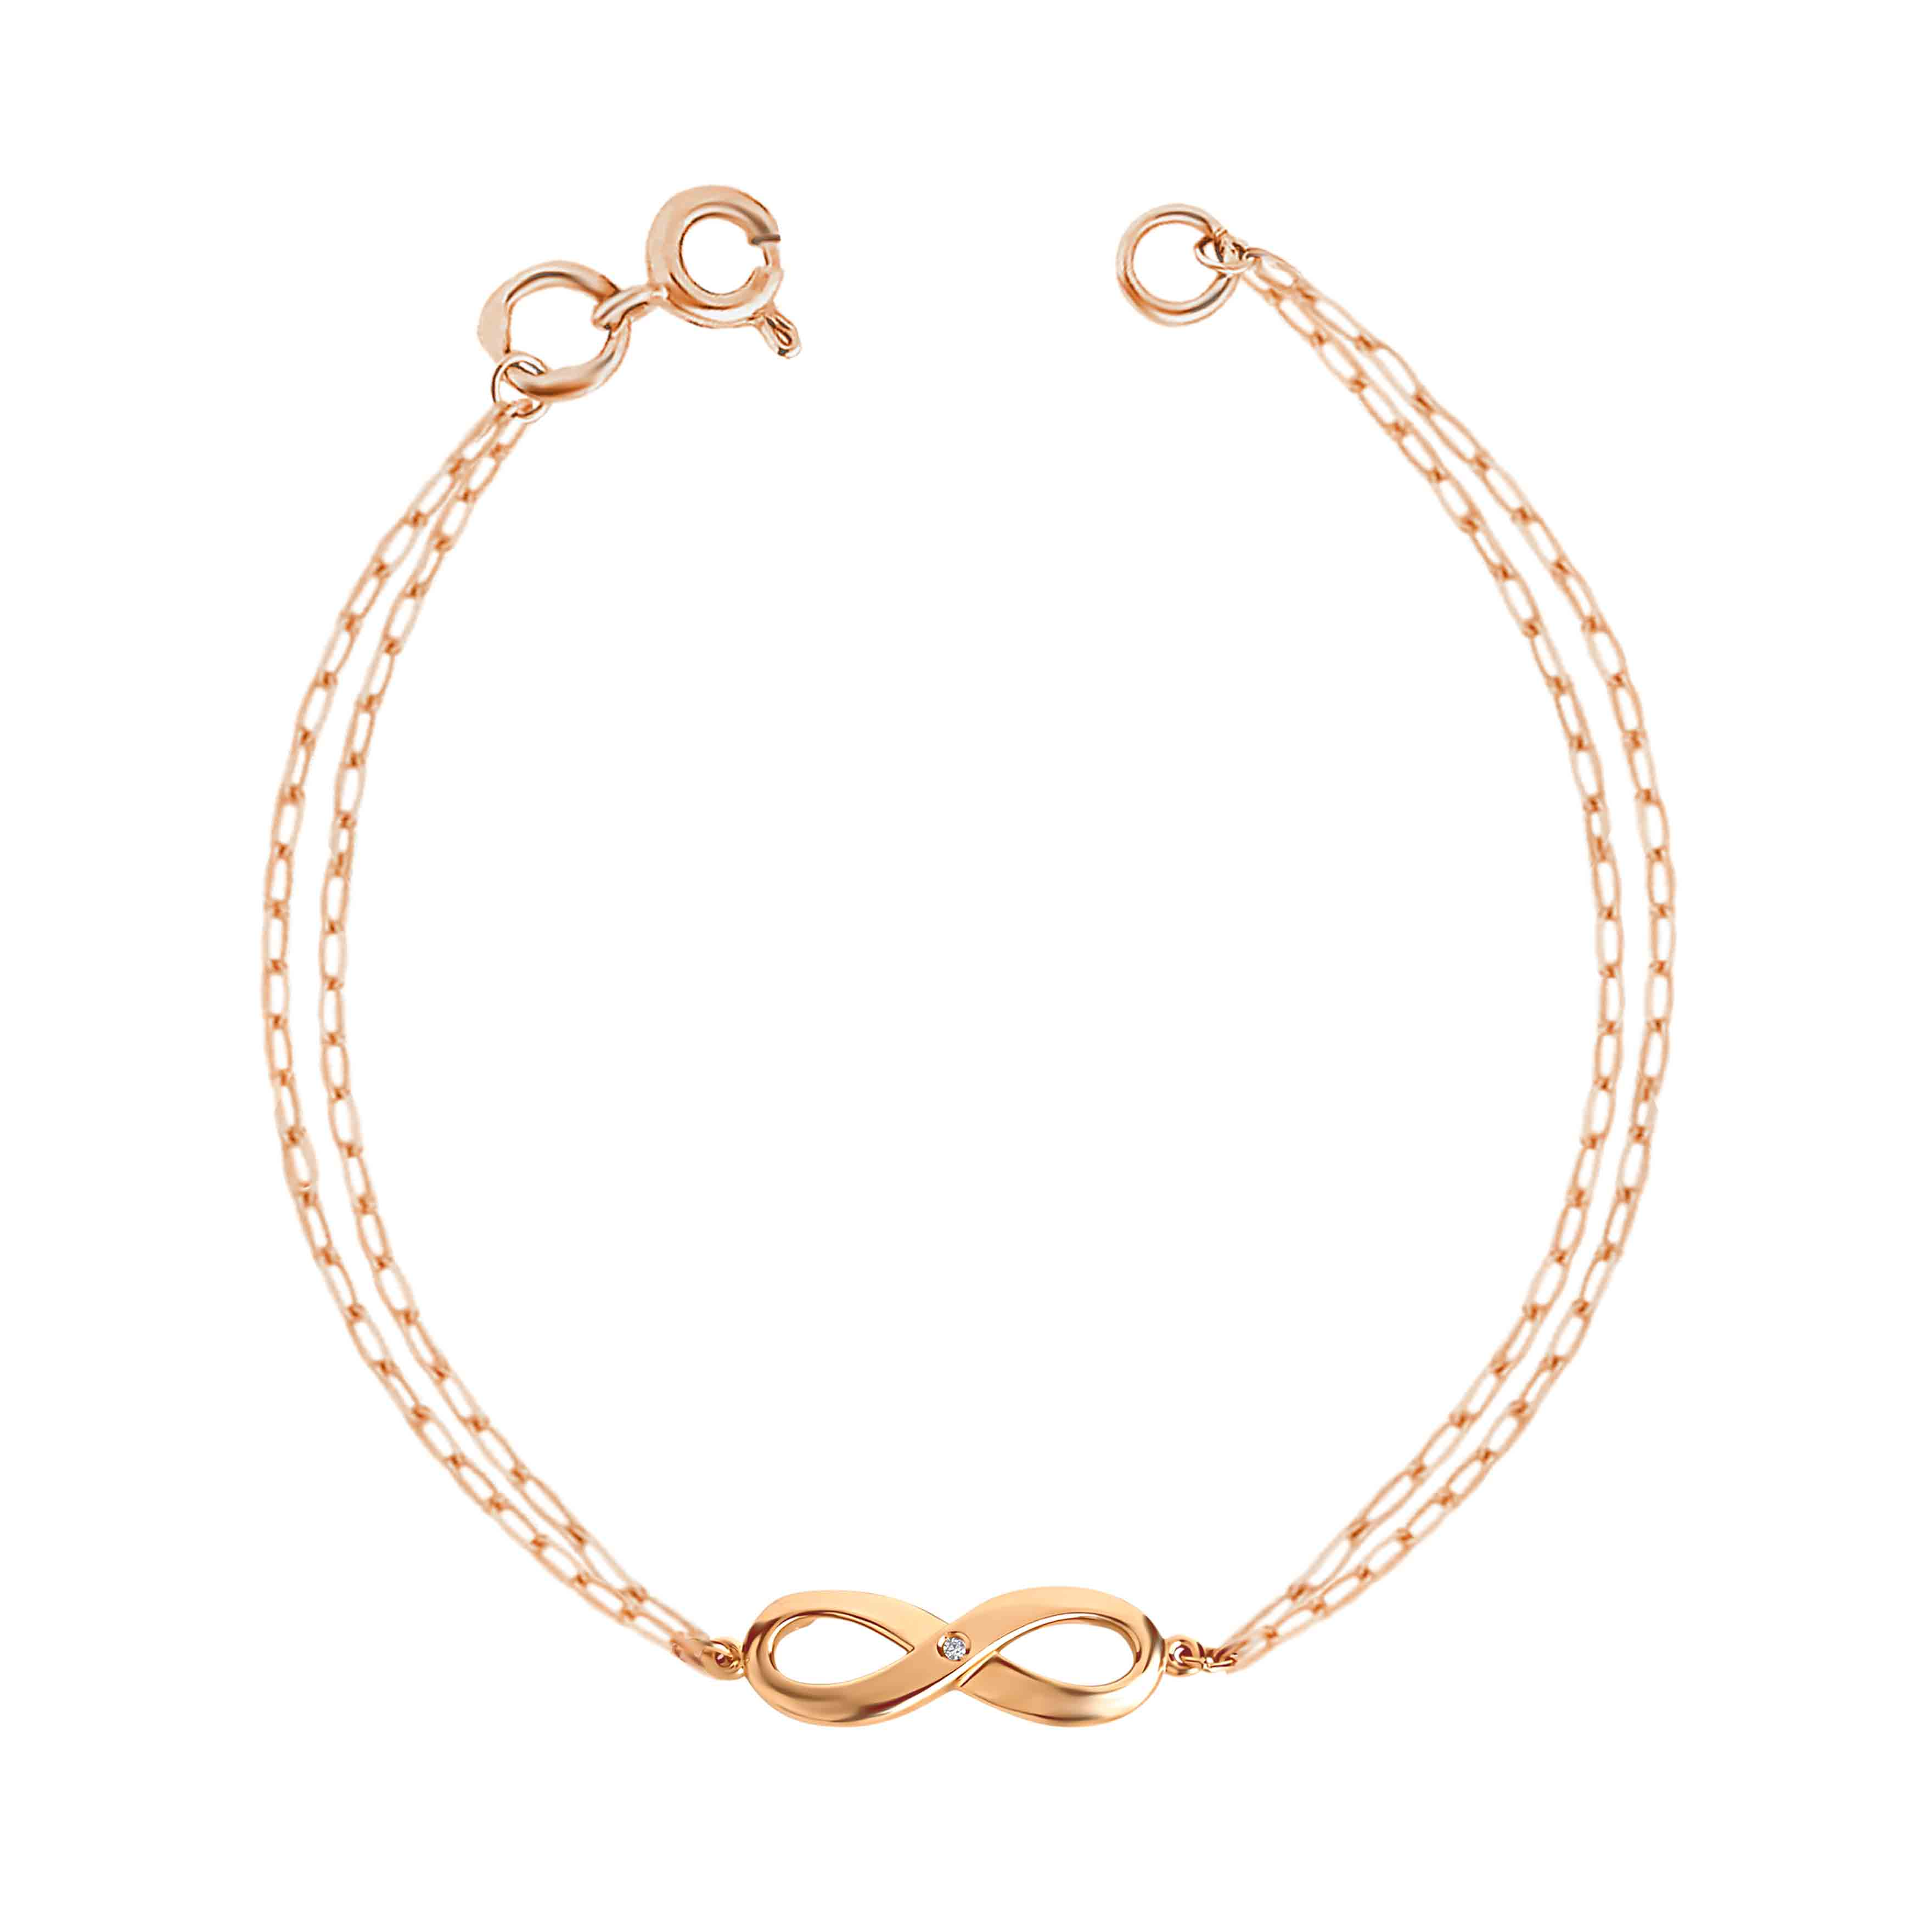 Diamond Infinity bracelet in 14kt rose gold. View 2